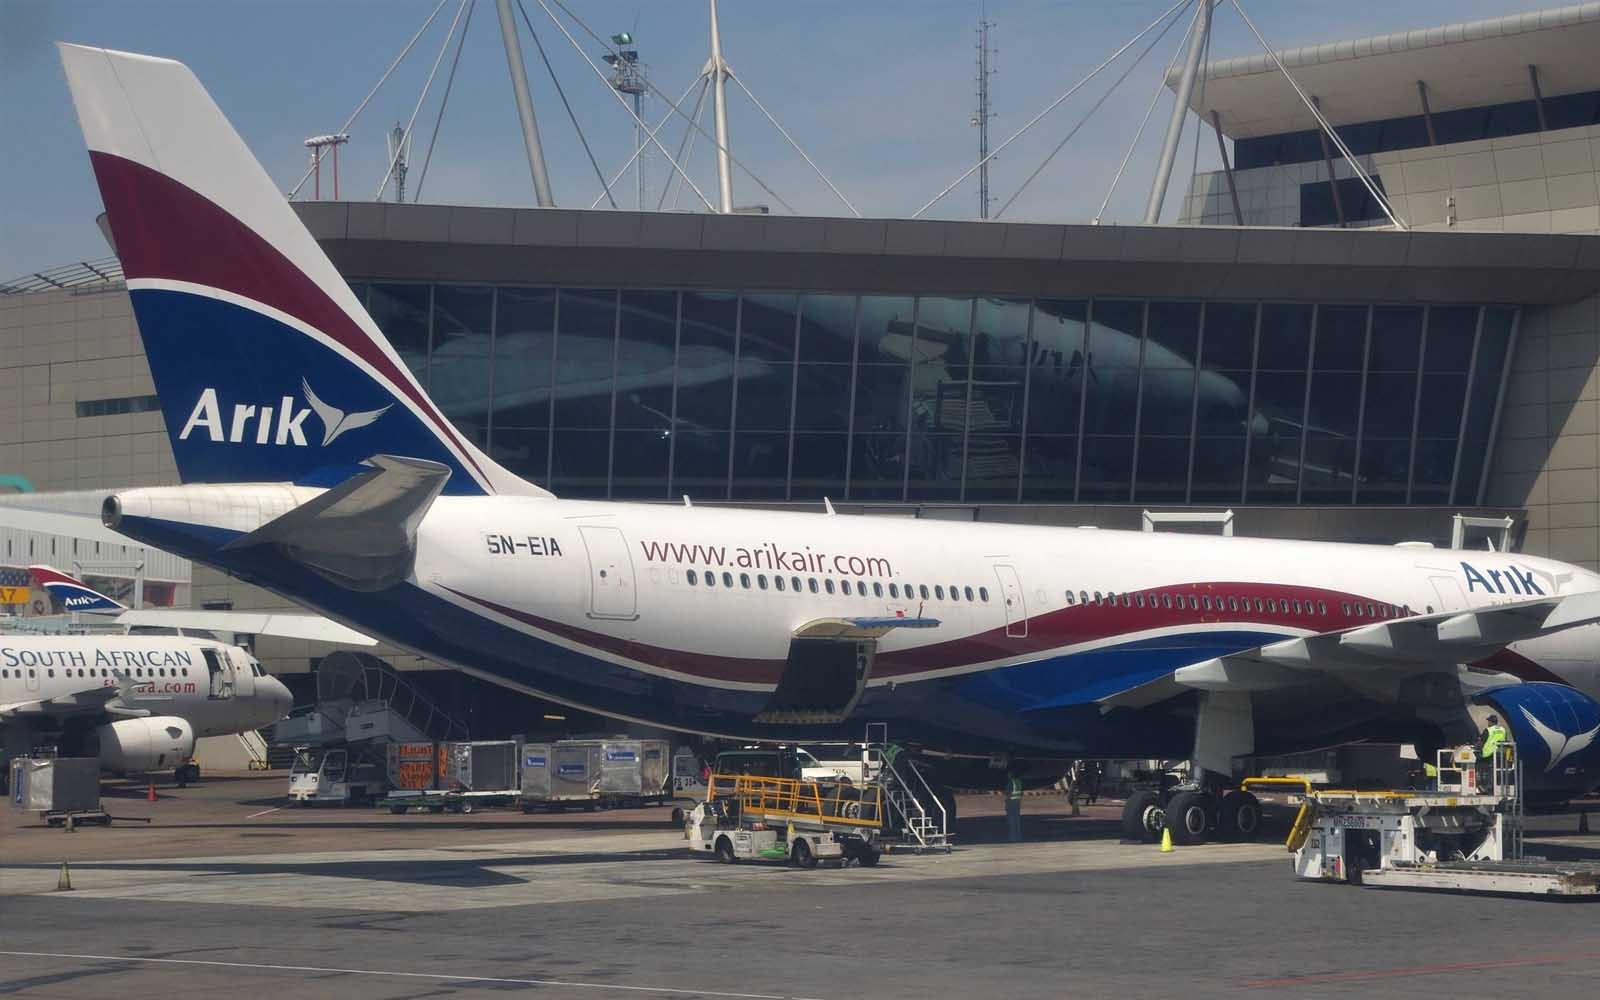 Arik Air Workers to embark in protest on Monday